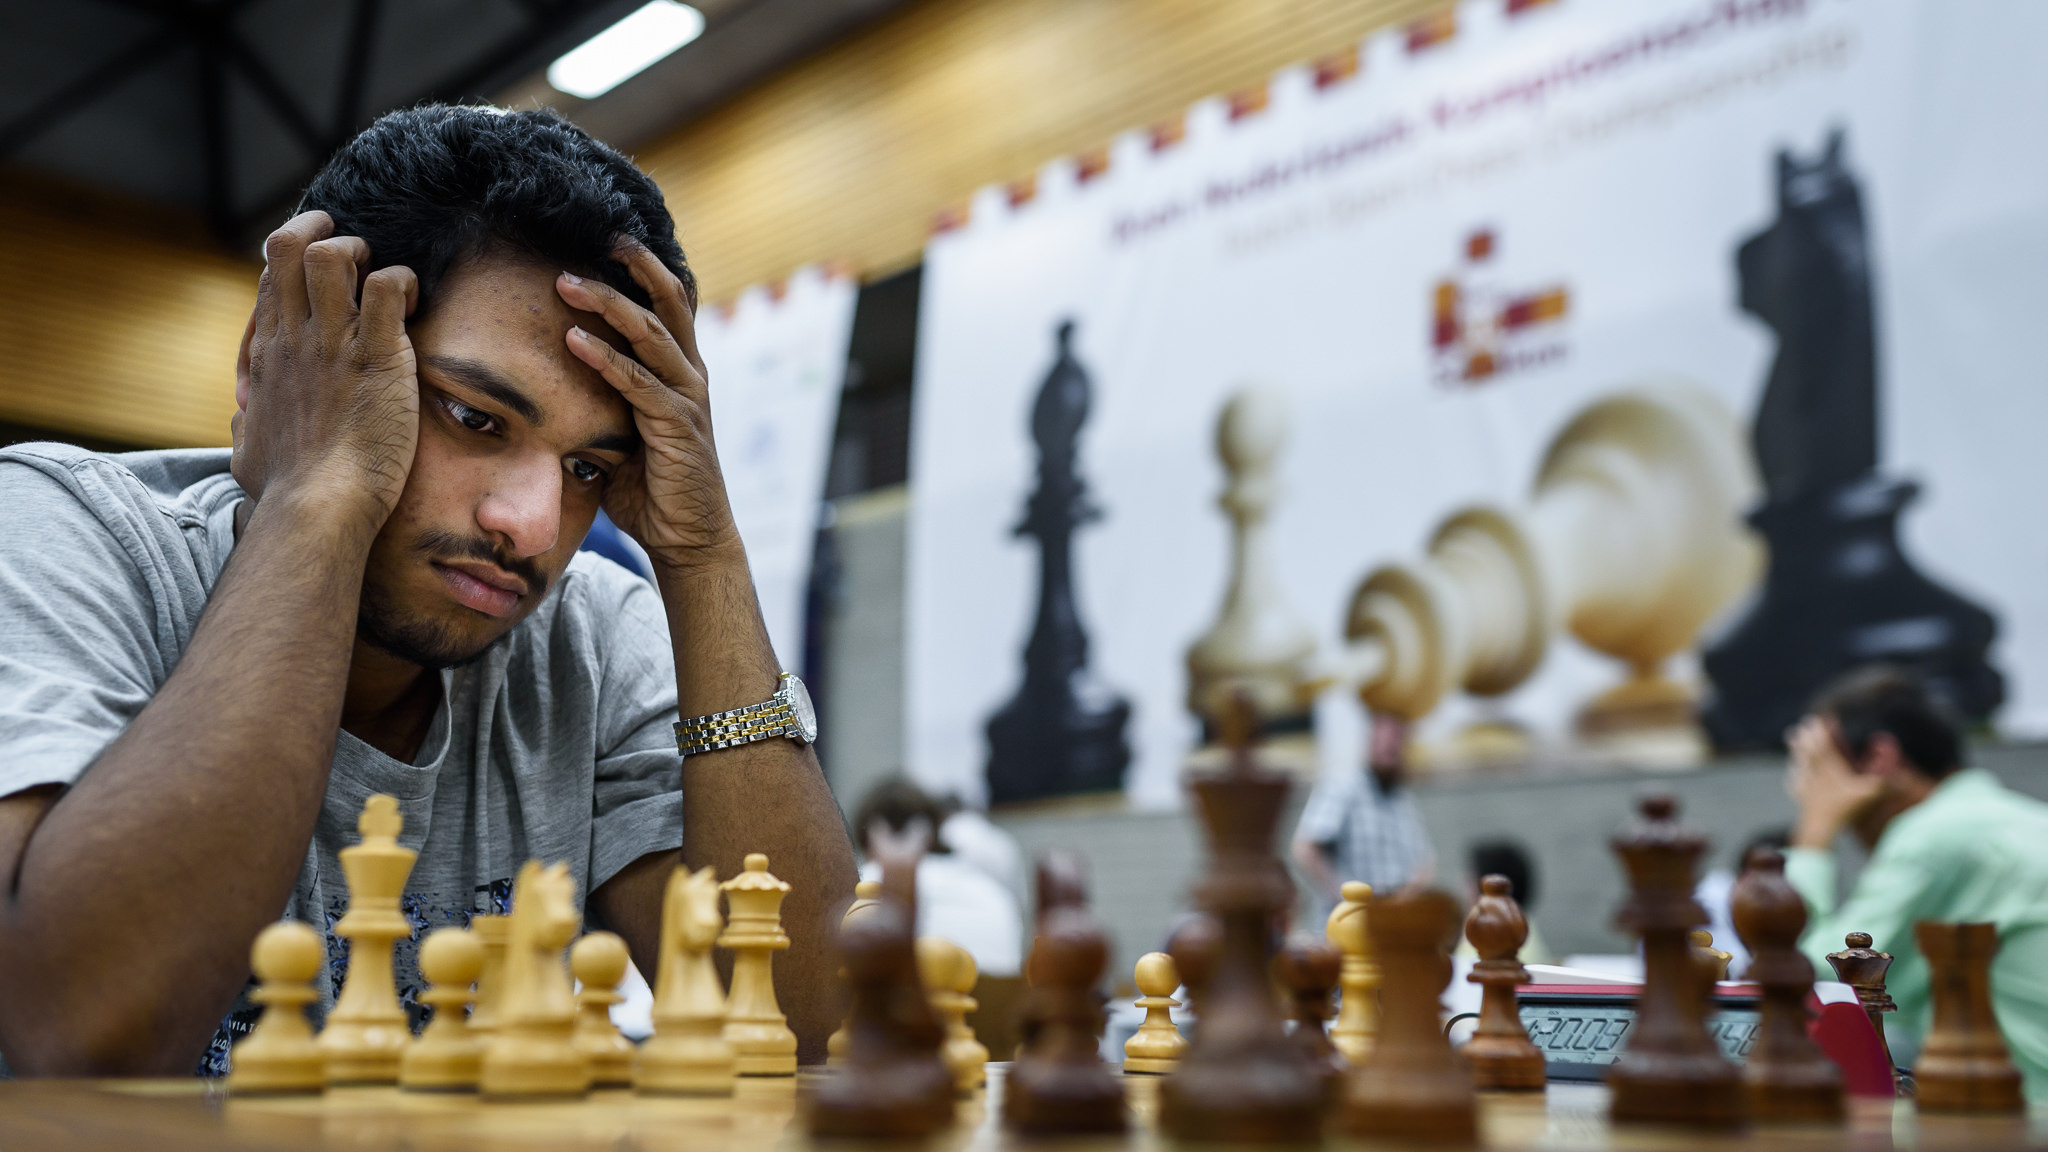 Saudi Arabia denies visas to Israel chess players